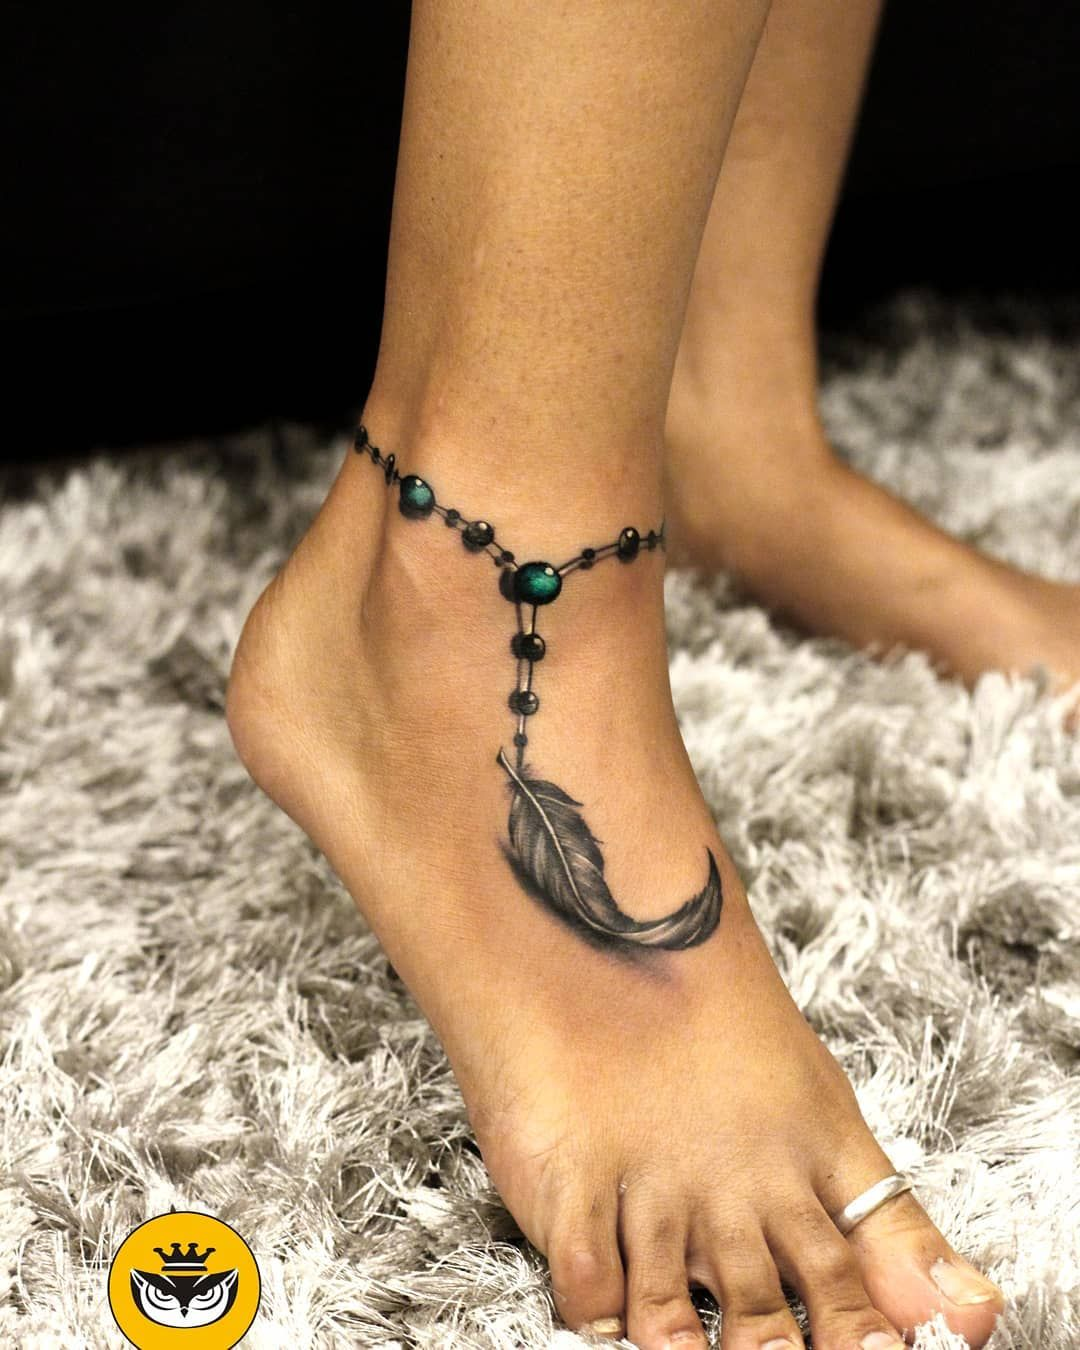 Feather Anklet Tattoo Tattoo Ideas and Inspiration